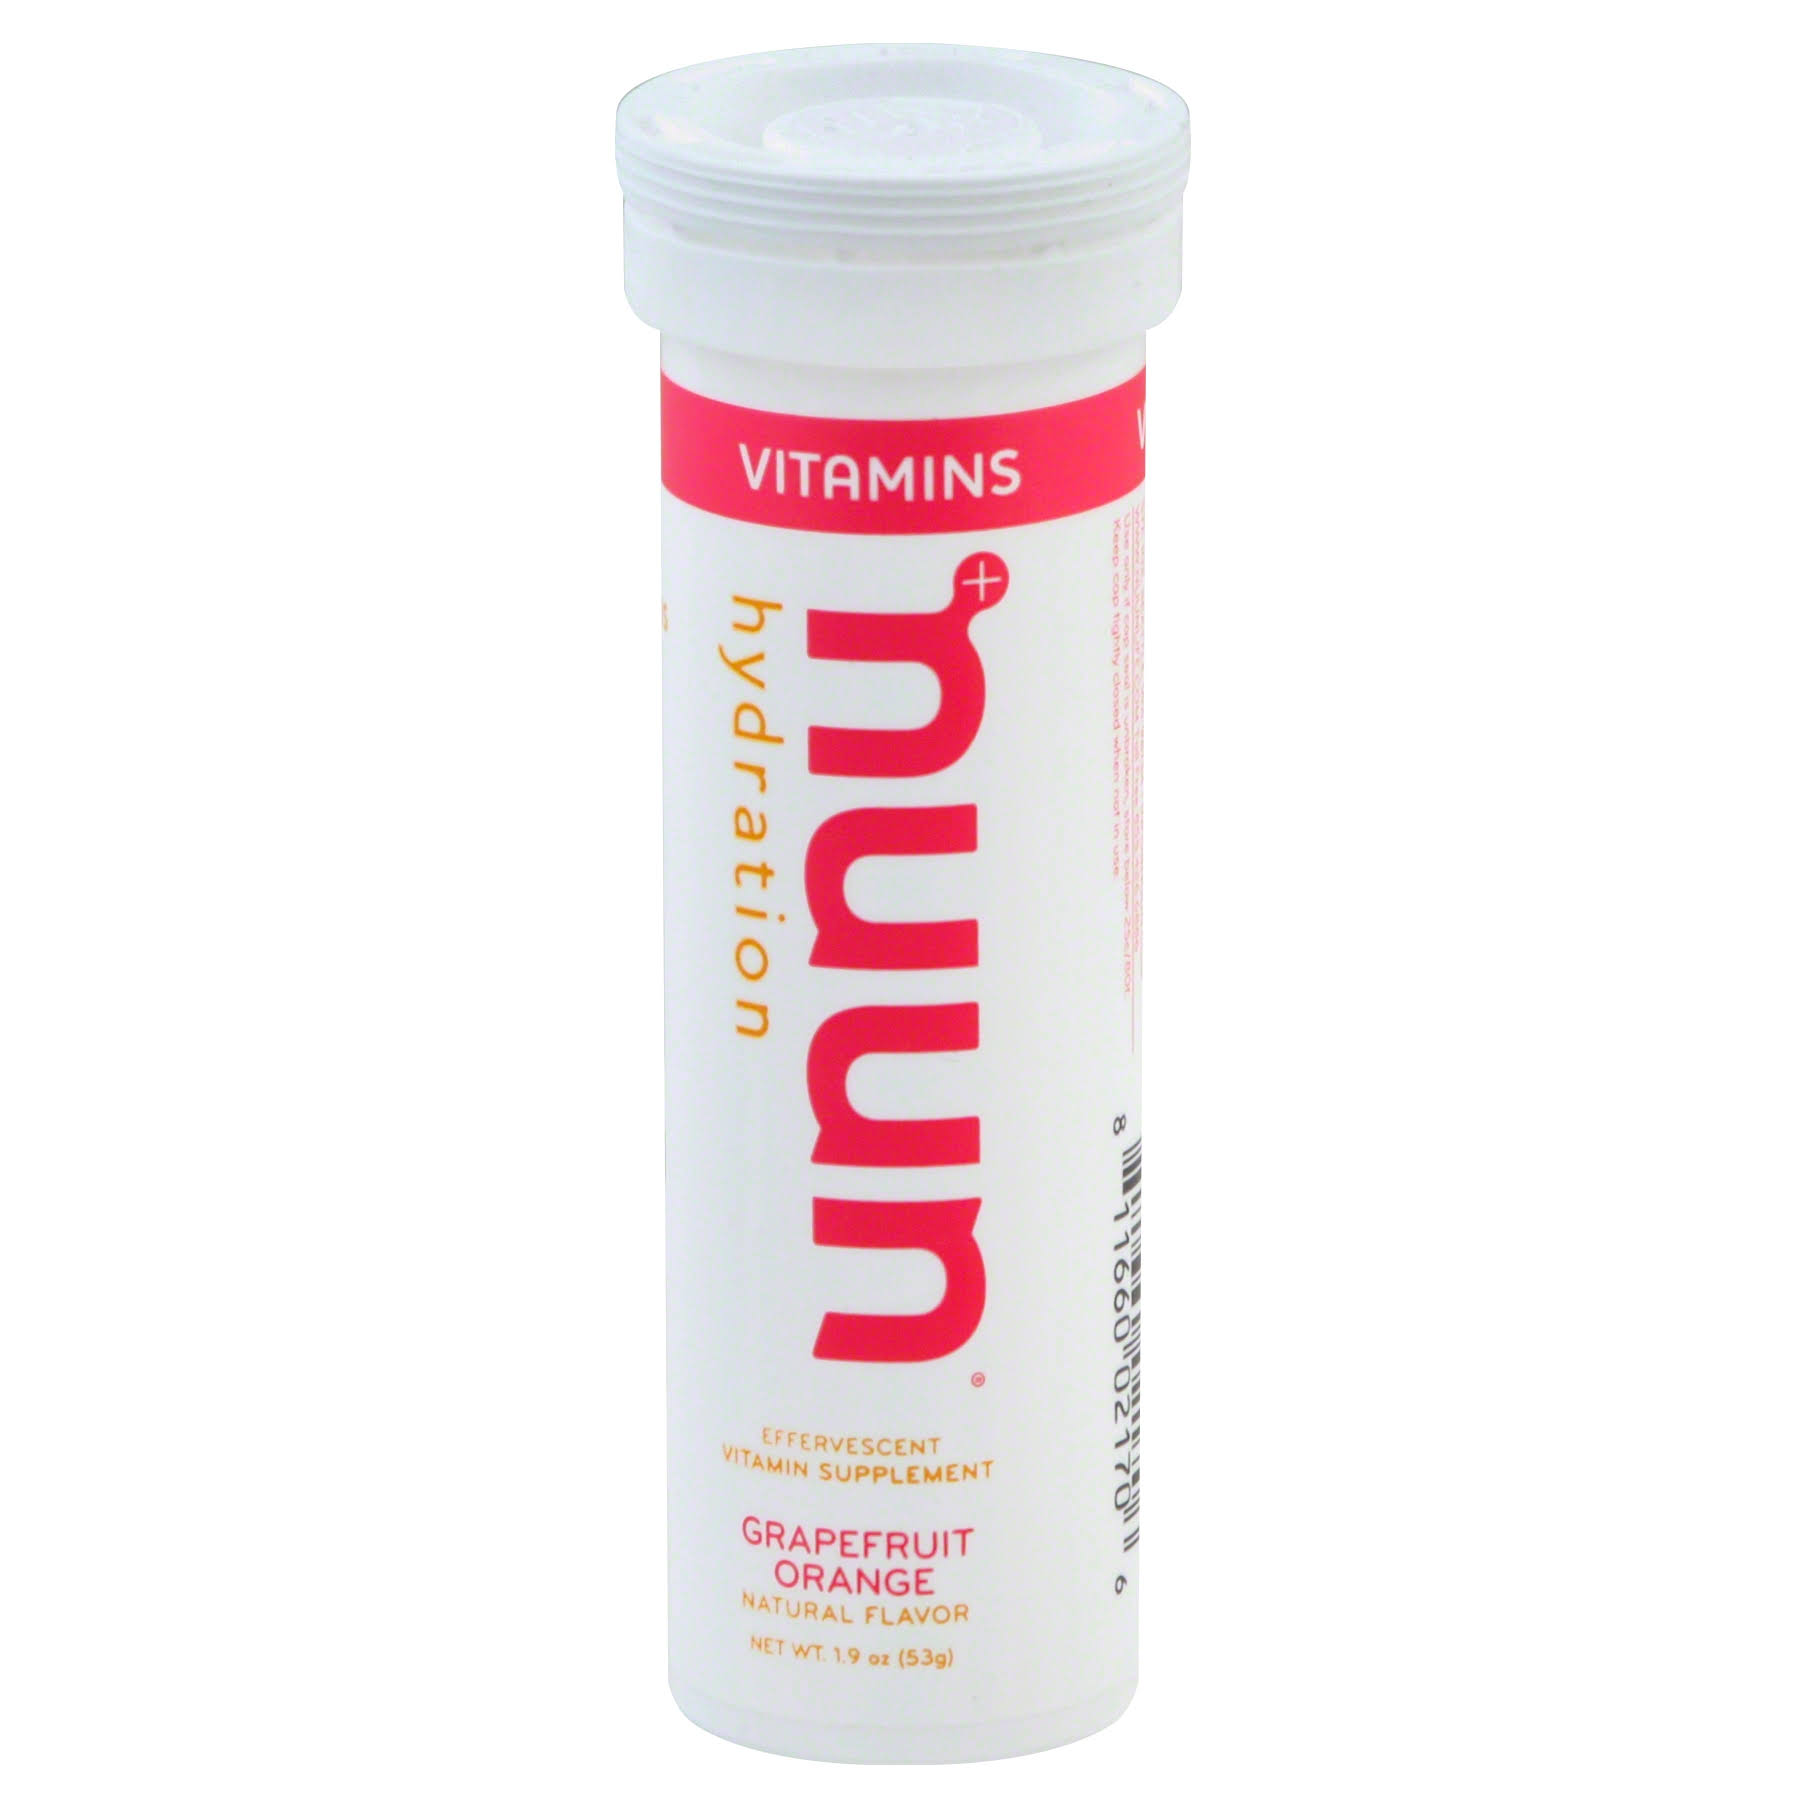 Nuun Hydration Vitamin Energy Supplements Drink Tablet - Grapefruit Orange